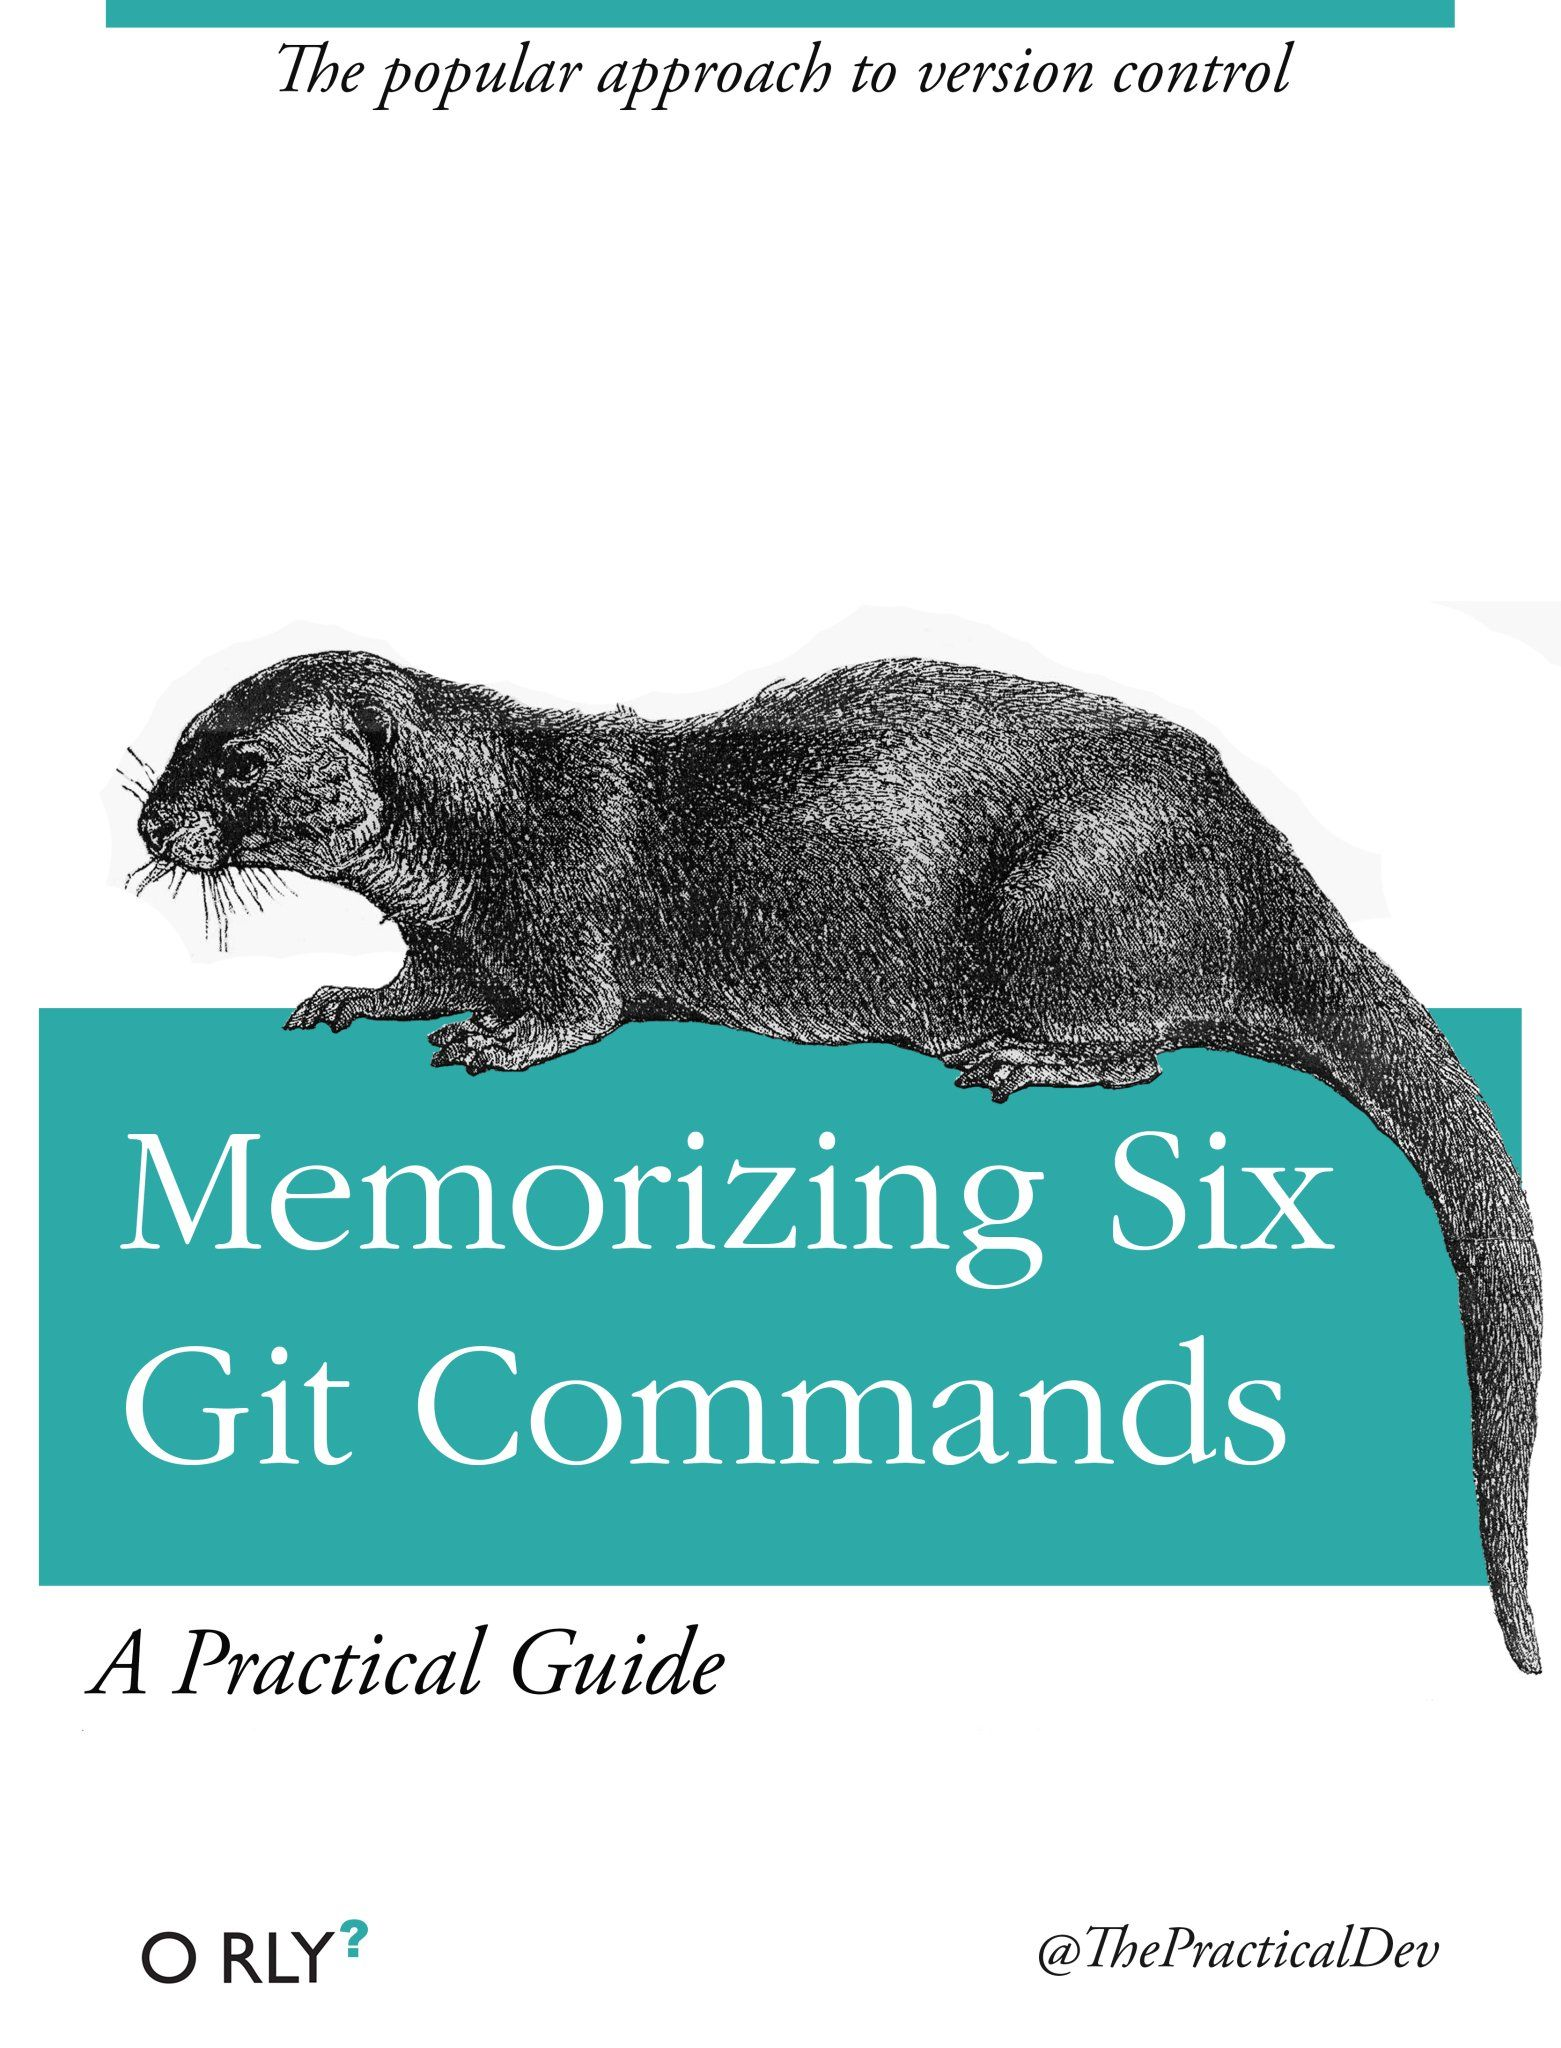 Memorizing Six Git Commands: The popular approach to version control